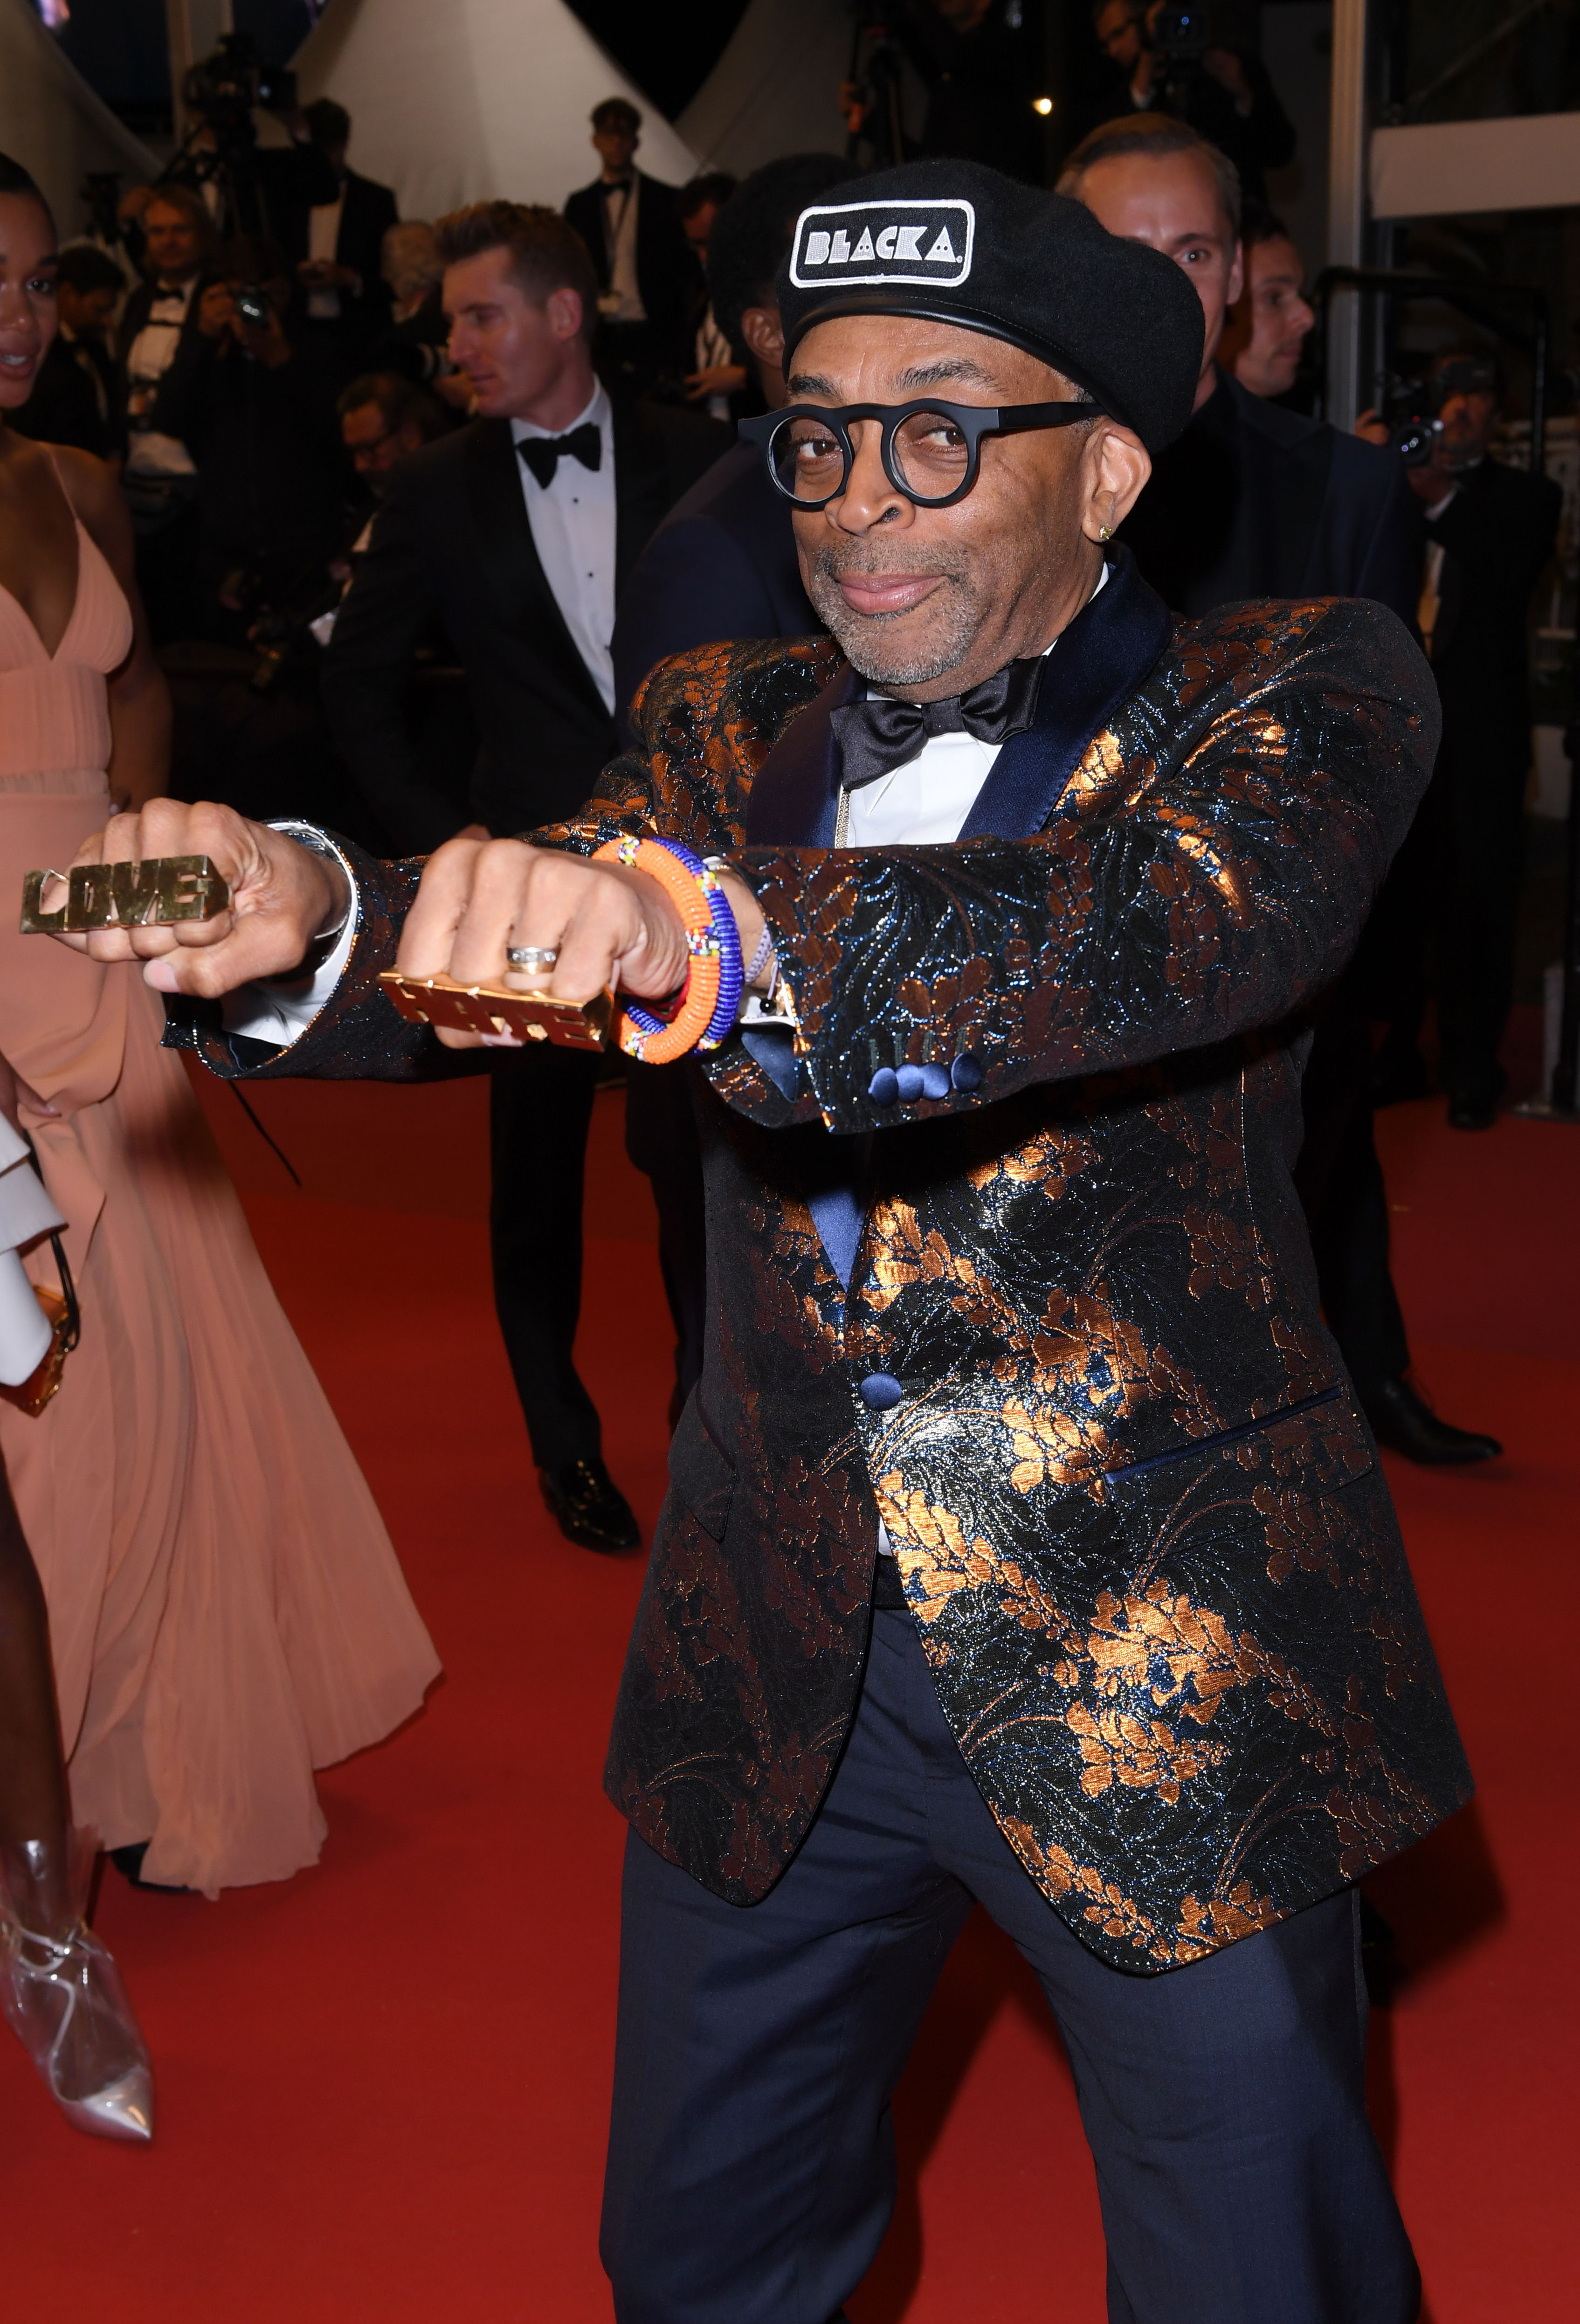 Spike Lee'BlacKkKlansman' premiere, 71st Cannes Film Festival, France - 14 May 2018